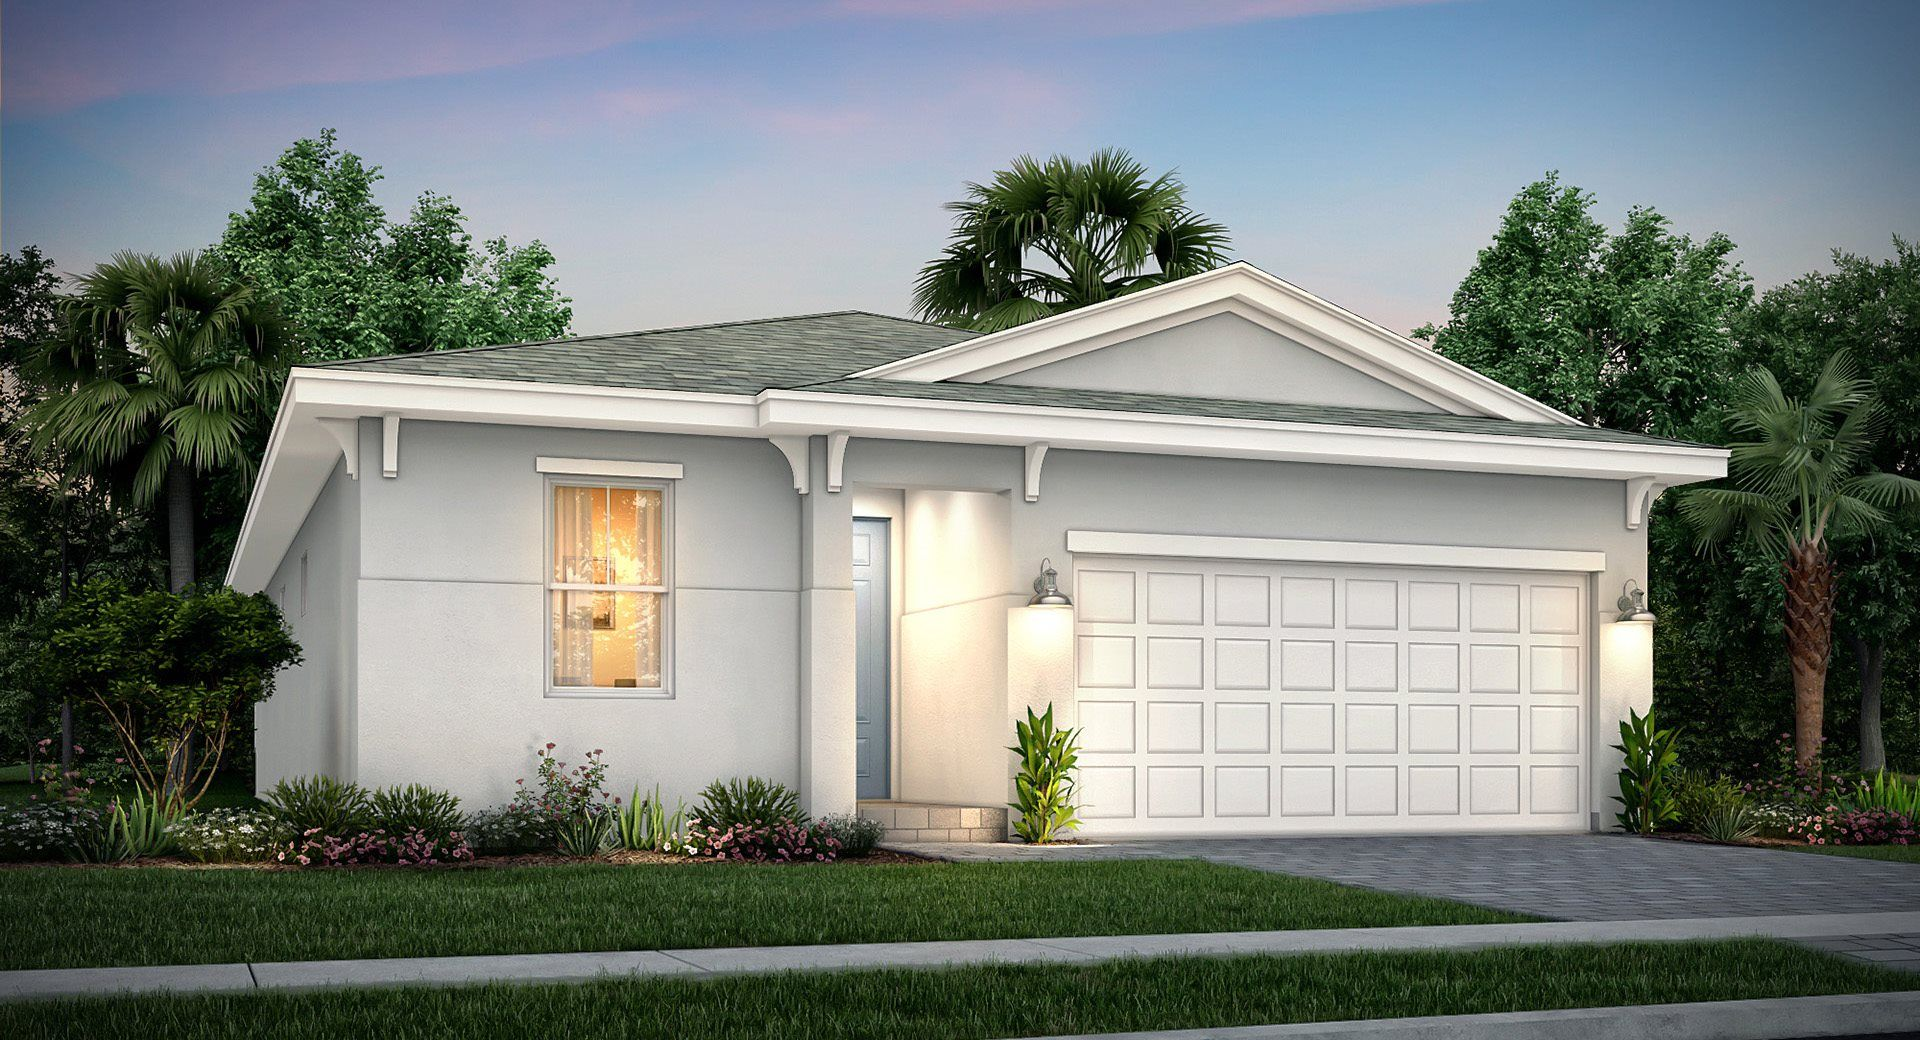 New Homes in Wes Palm Beach